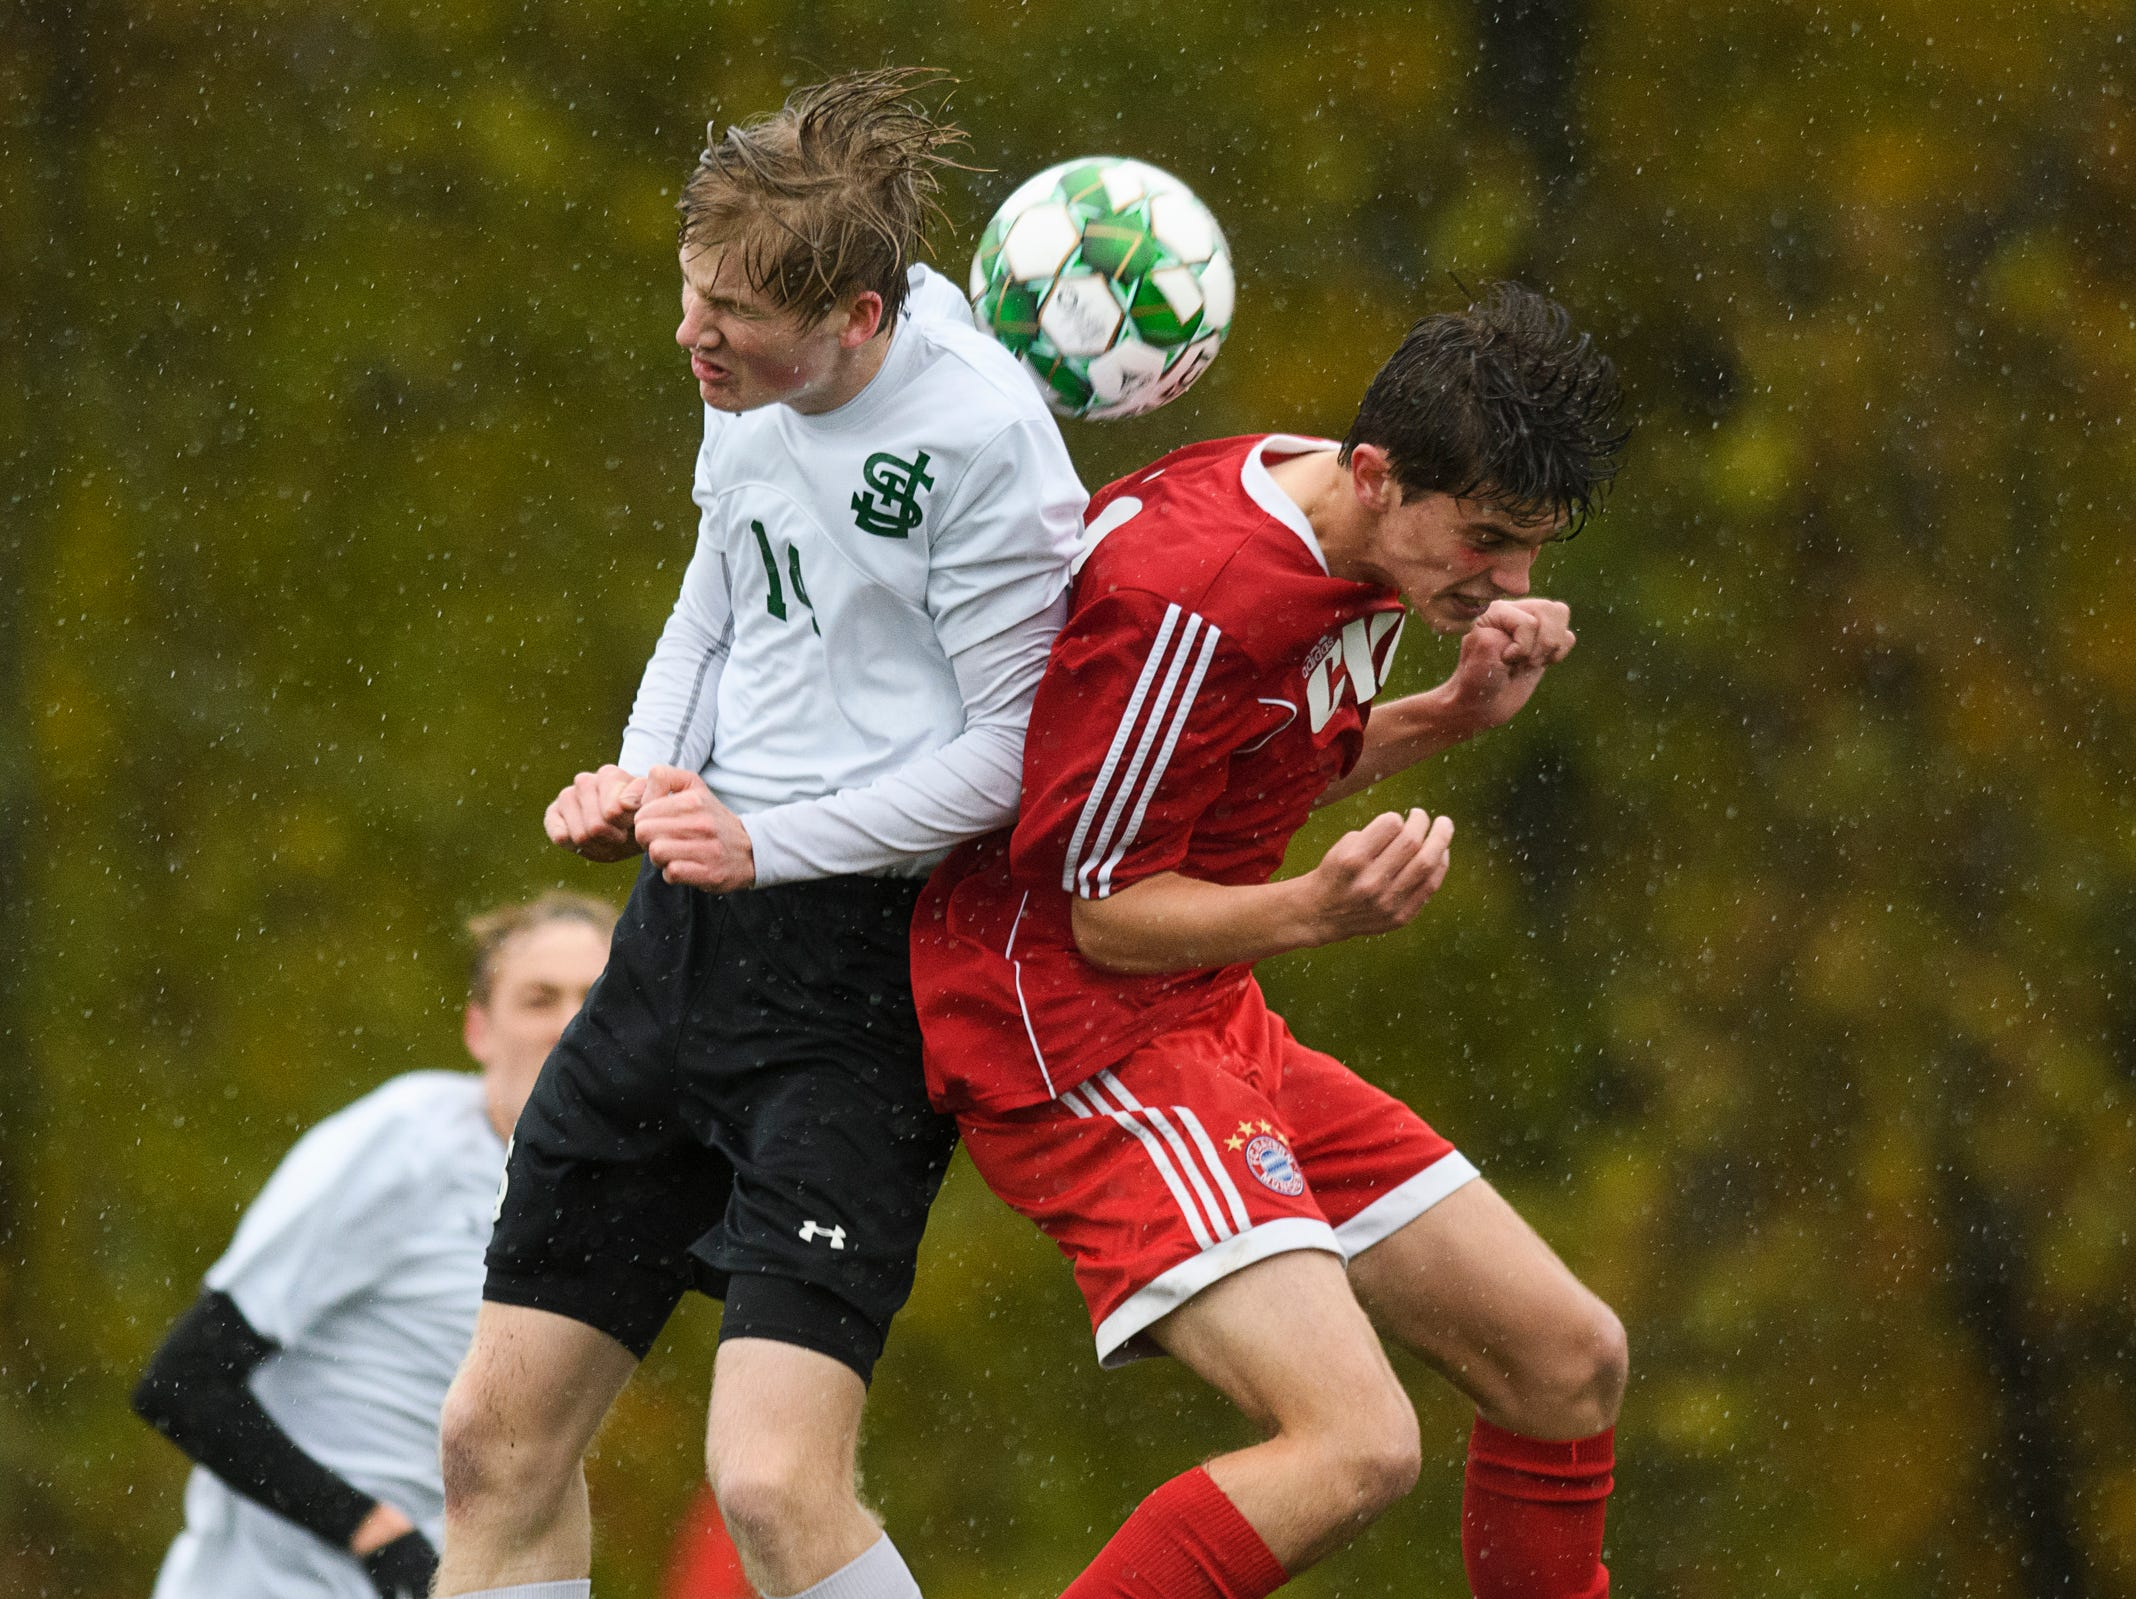 CVU's Jack Sinopoli (30) and St. Johnsbury's Liam Tobin (14) battle to head the ball during the Division I boys soccer championship game between the St. Johnsbury Hilltoppers and the Champlain Valley Union Redhawks at Buck Hard Field on Saturday morning November 3, 2018 in Burlington.